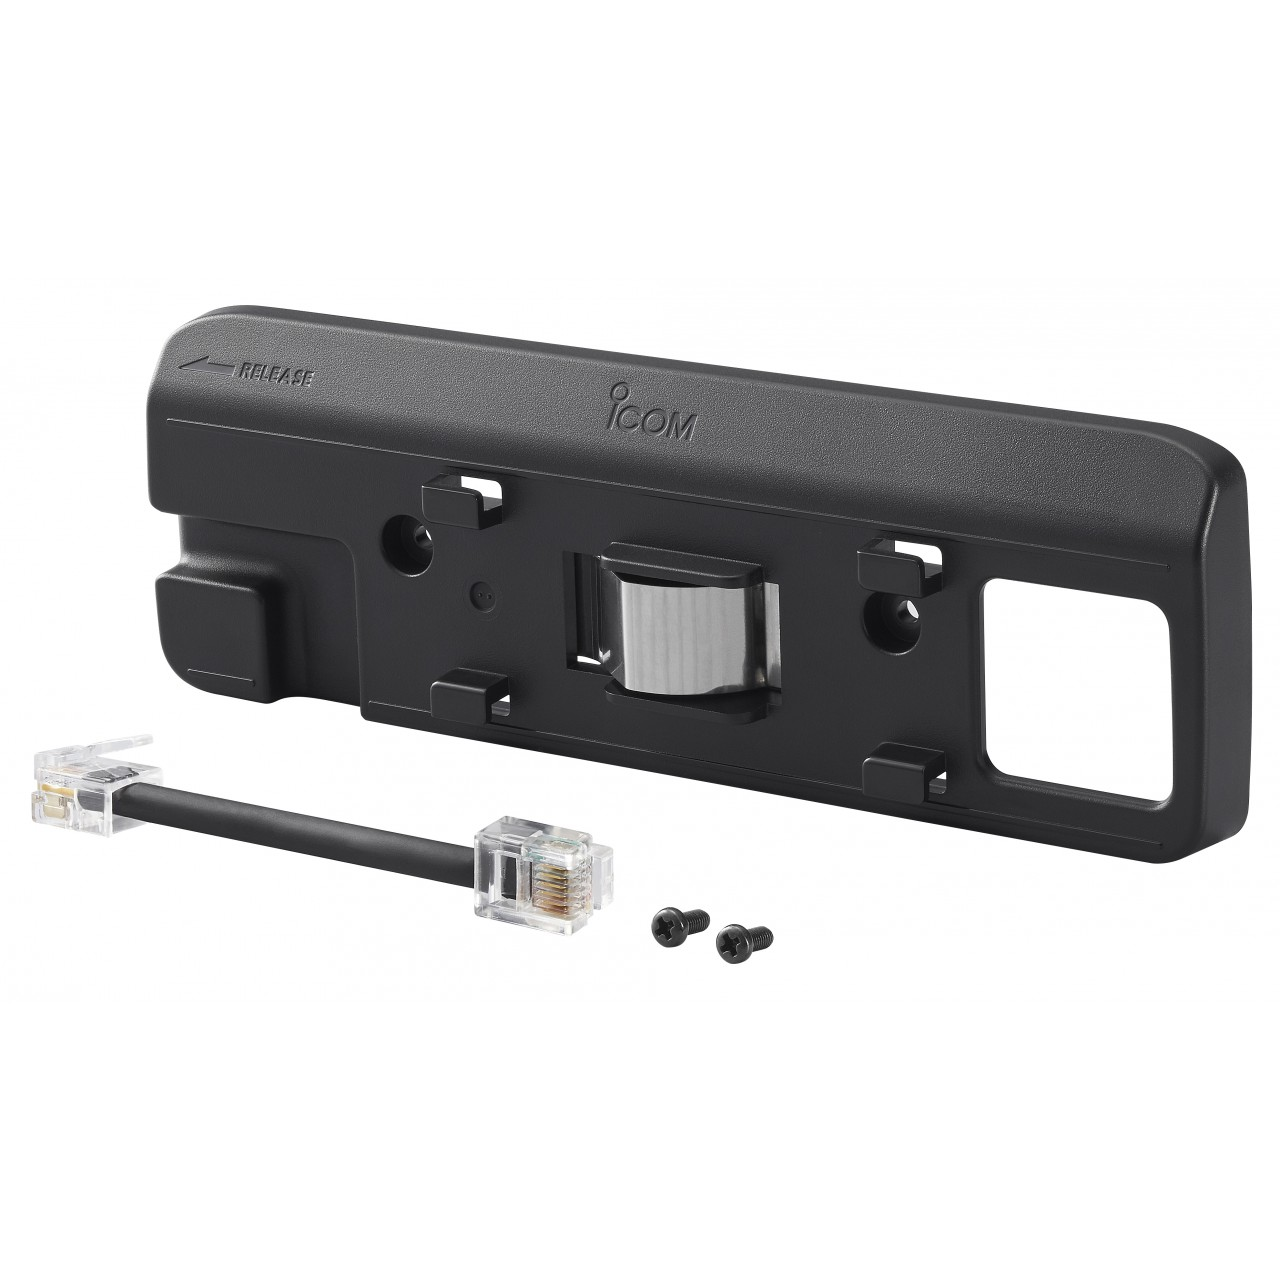 MBA-4 Covers, fasteners and cradles - ICOM